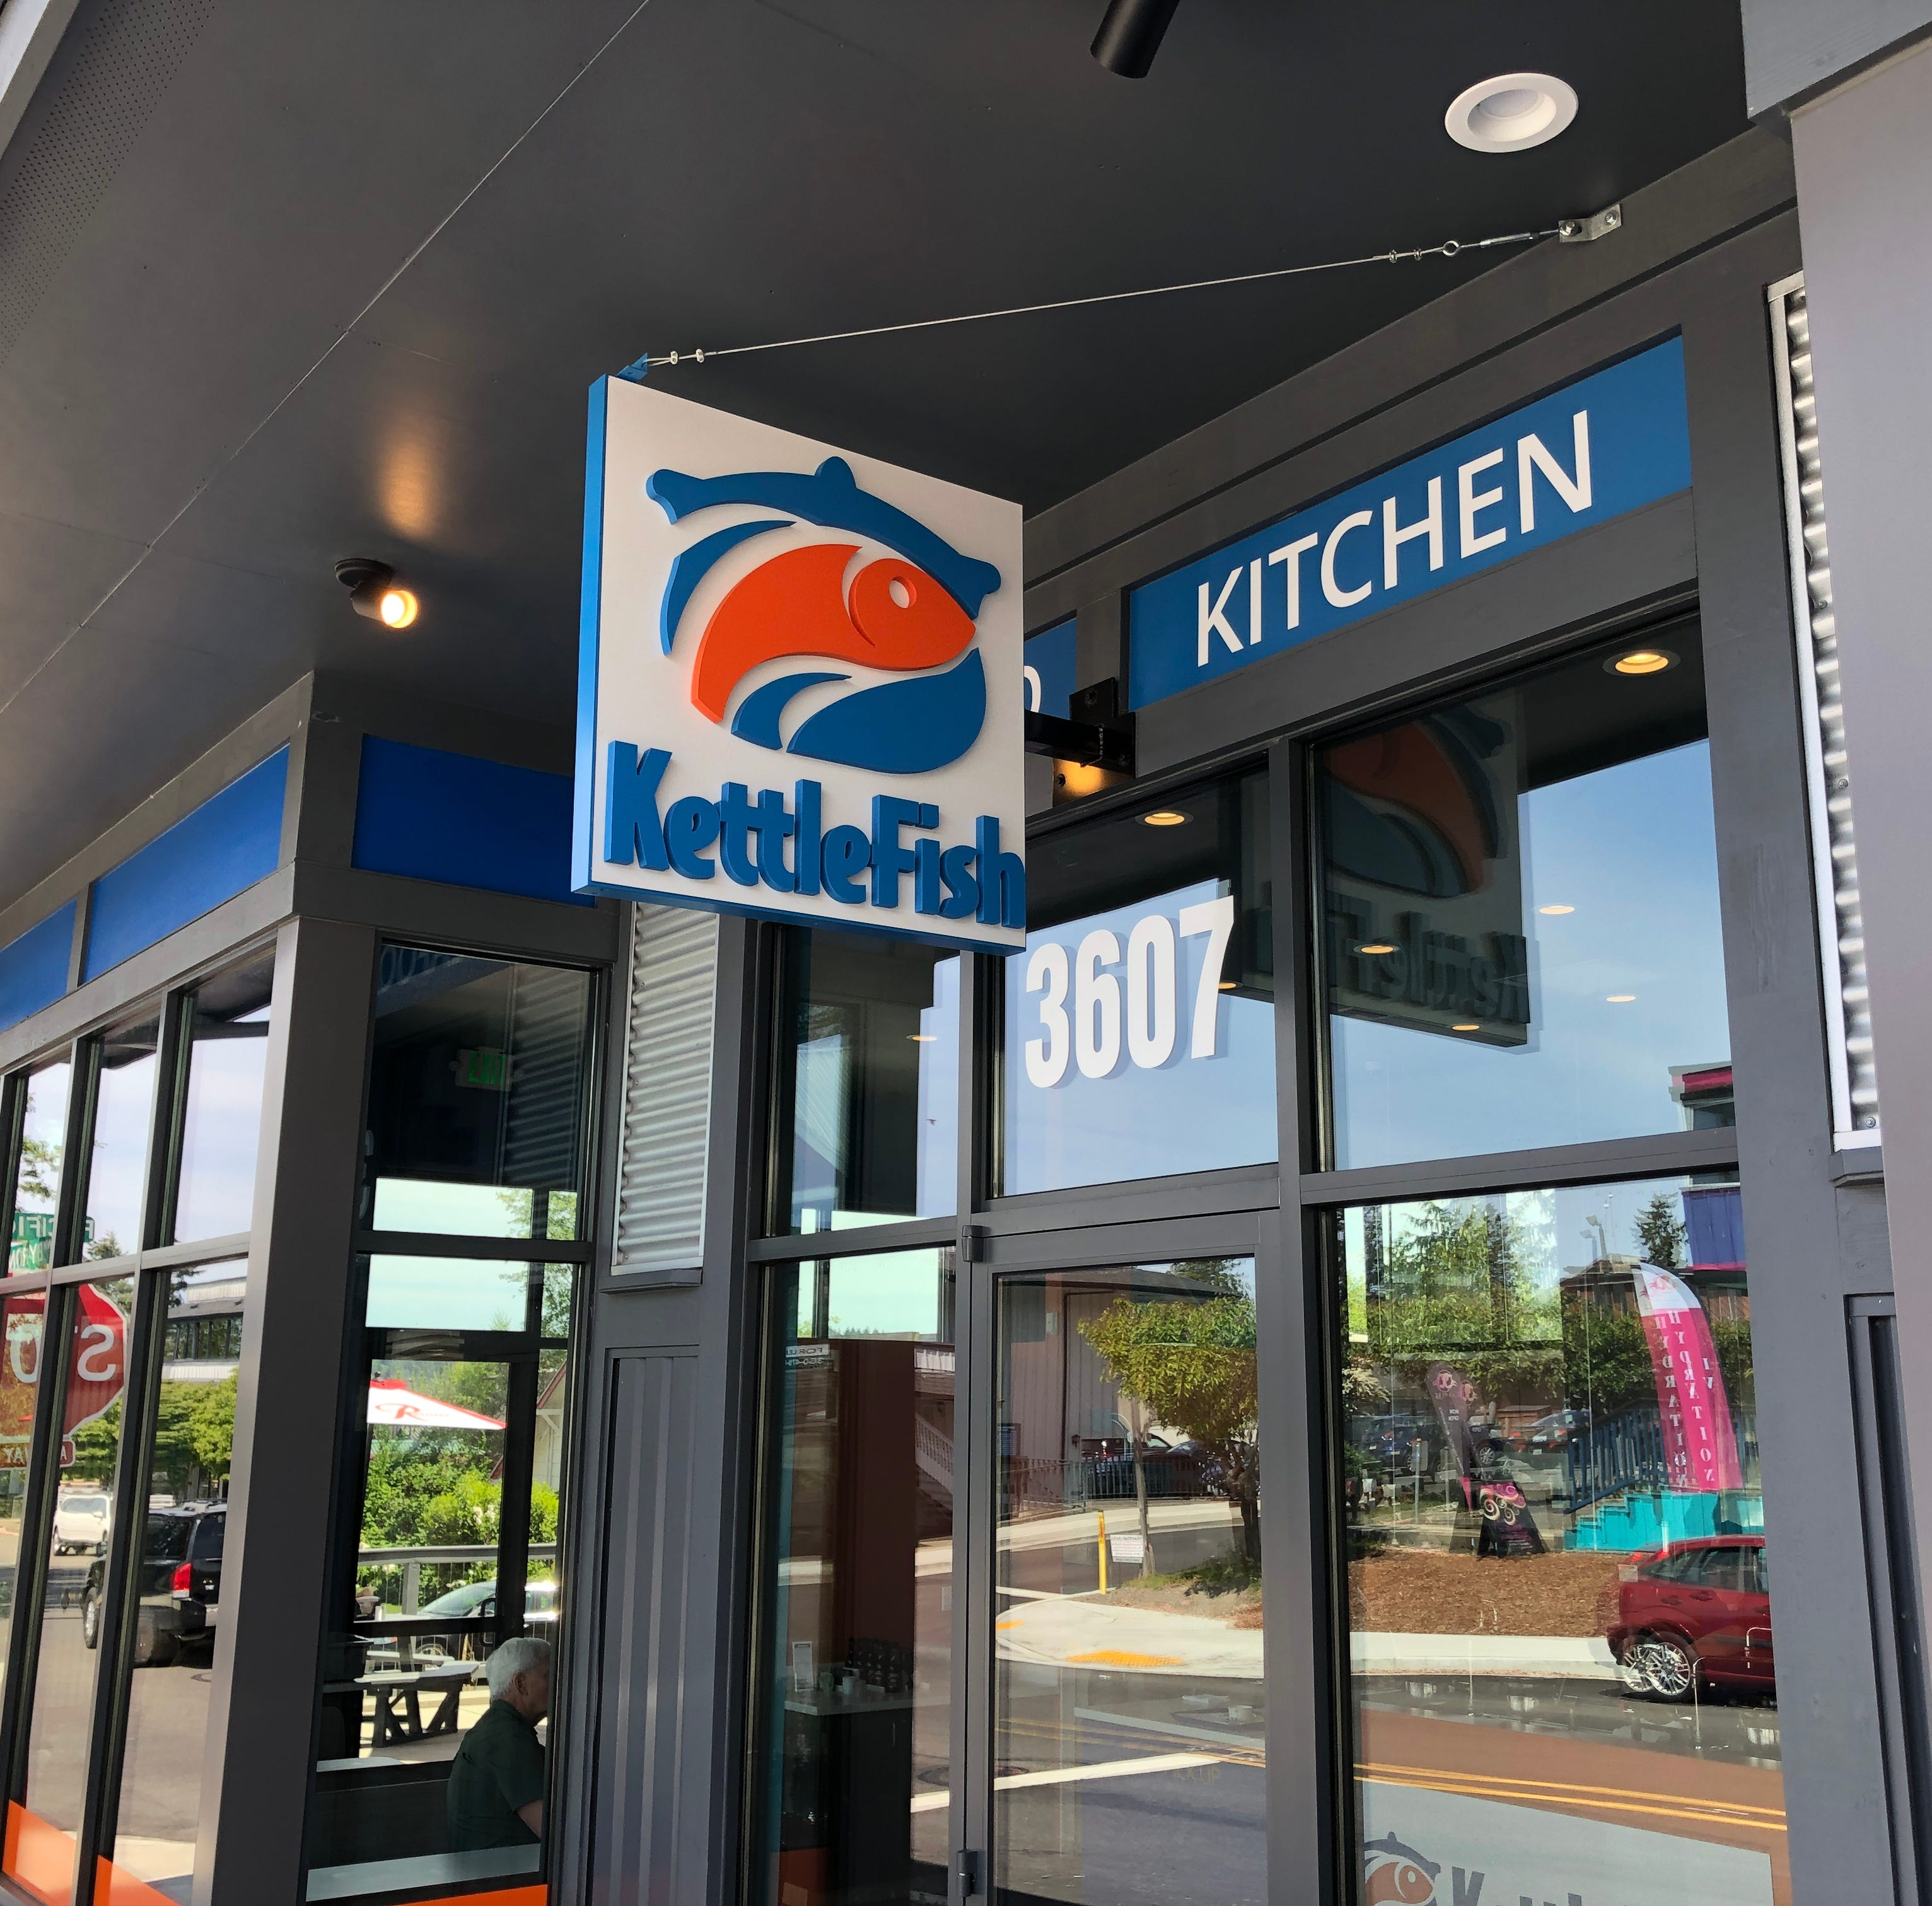 Kettlefish brings fresh steam-cooked seafood to Silverdale